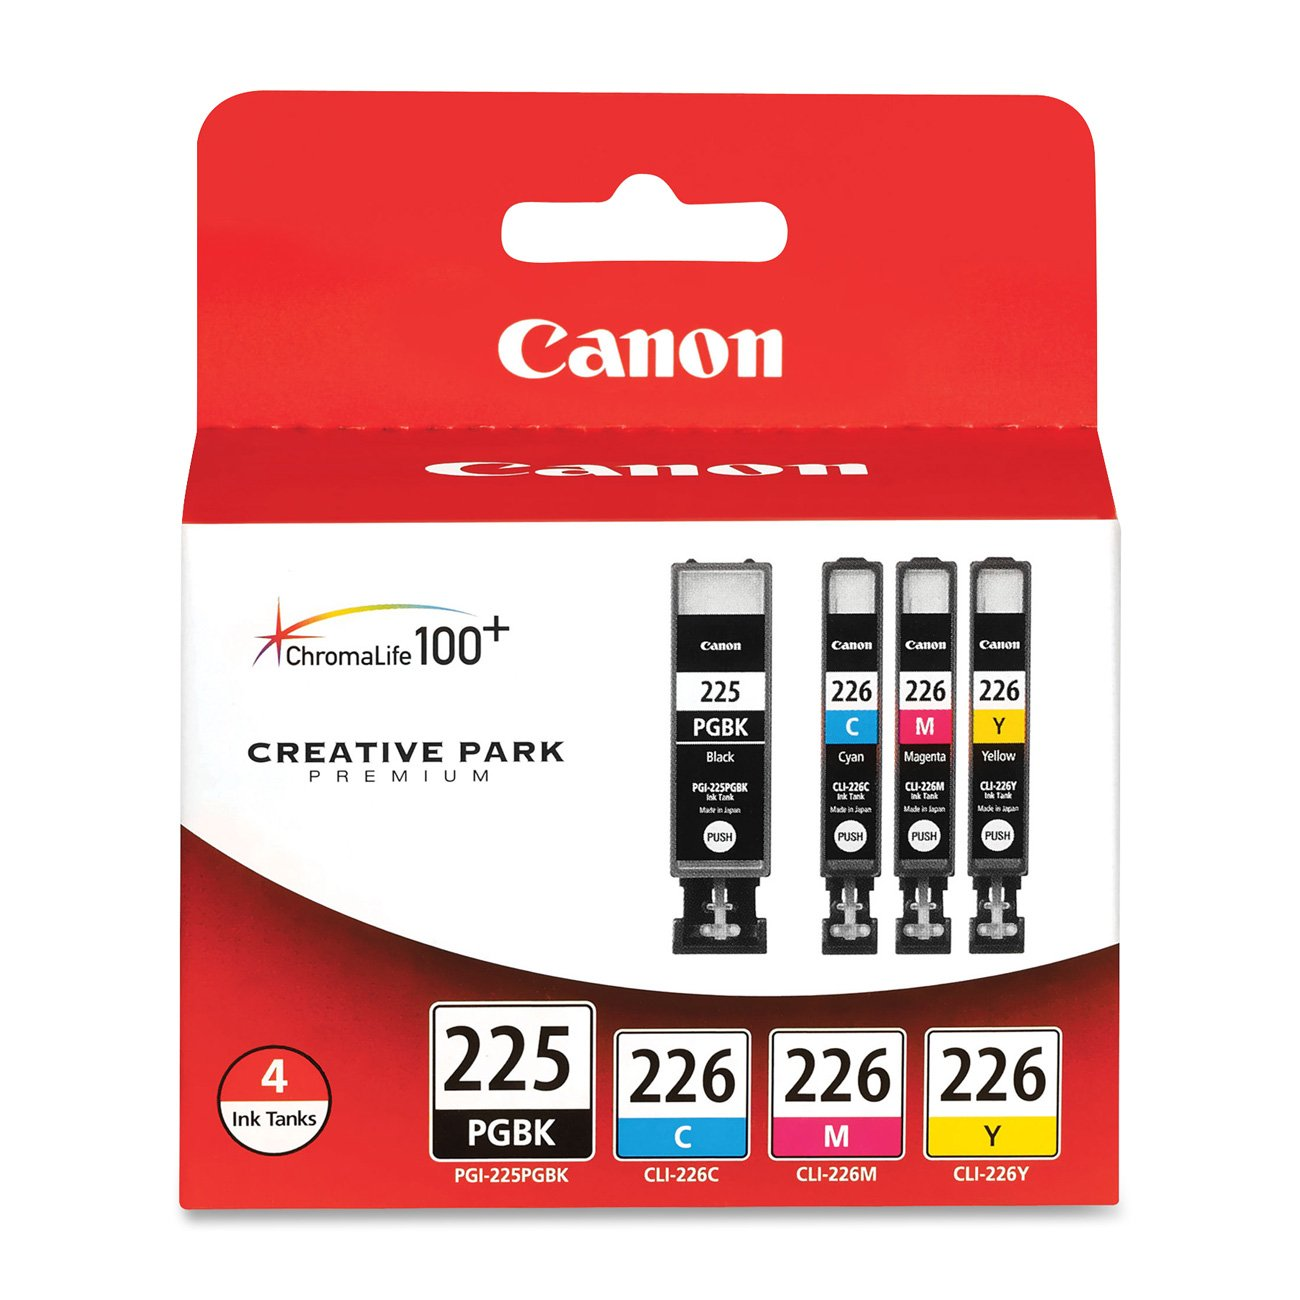 Canon PGI-225BK Black and CLI-226 C/M/Y Color Ink Cartridges (4530B008), Combo 4/Pack by Canon